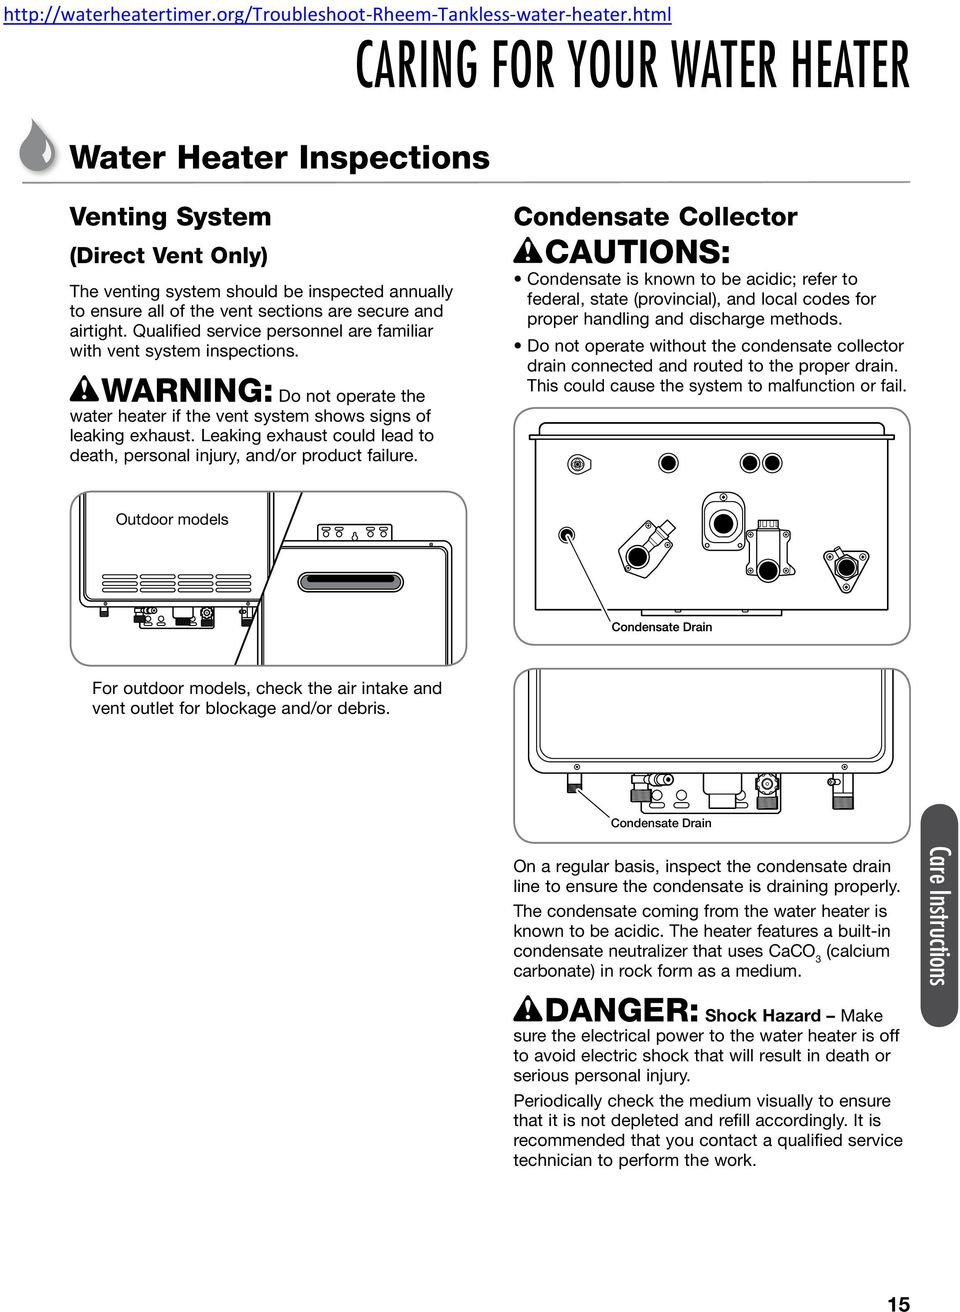 Qualified service personnel are familiar with vent system inspections. WARNING: Do not operate the water heater if the vent system shows signs of leaking exhaust.